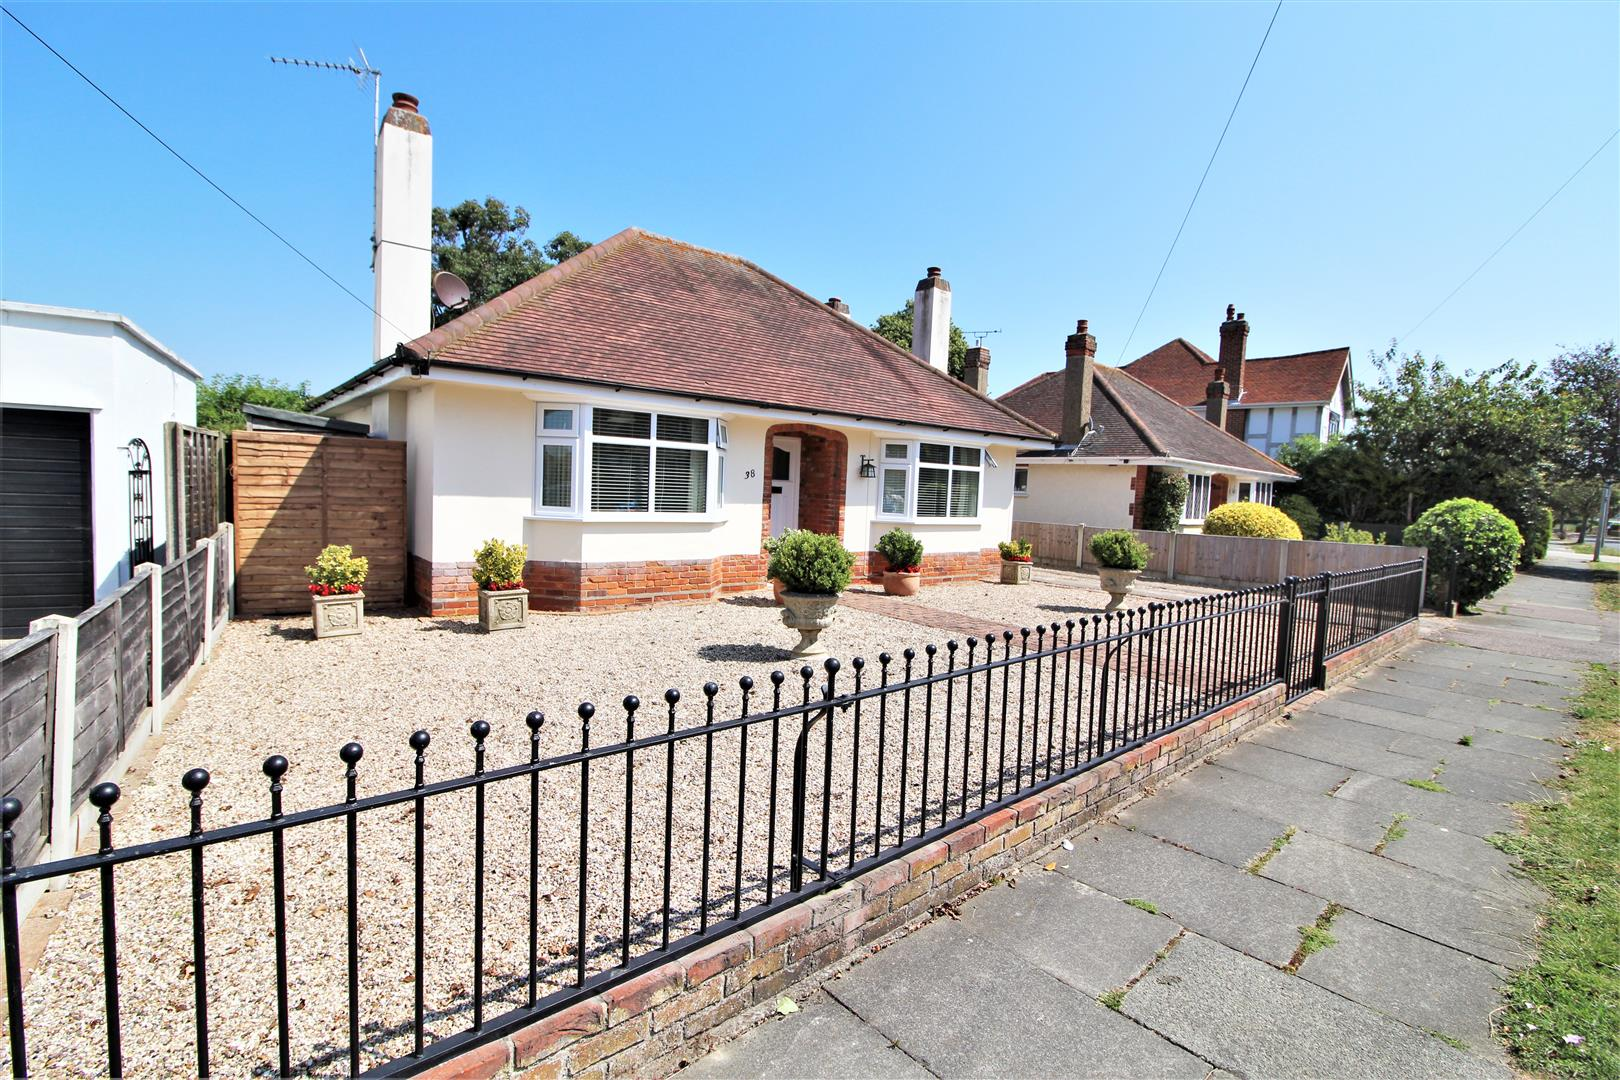 Waltham Way, Frinton-On-Sea, Essex, CO13 9JF